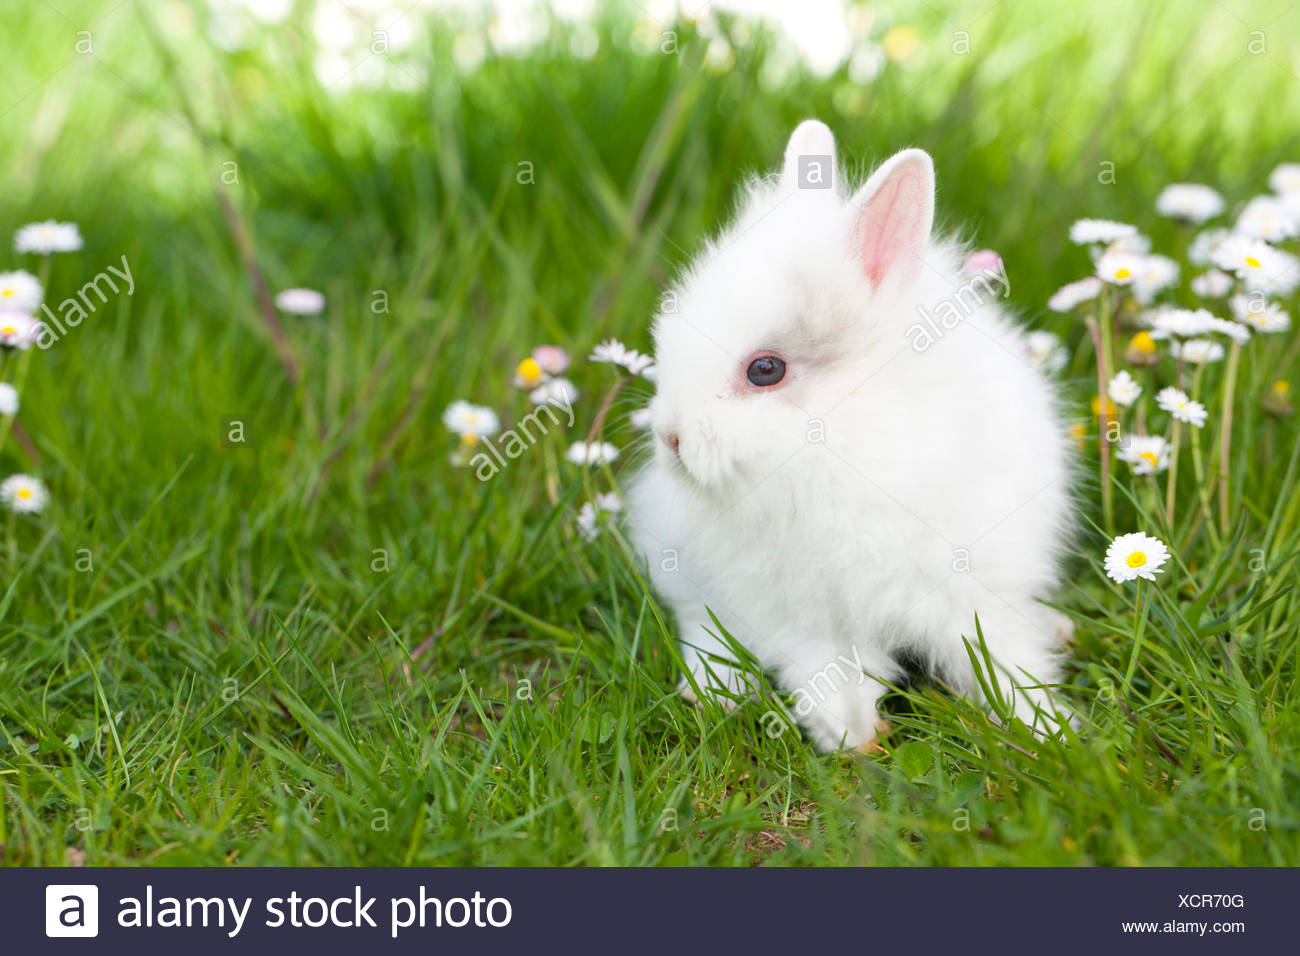 Dwarf Rabbit, Lionhead Rabbit White young grass Daisies Stock Photo